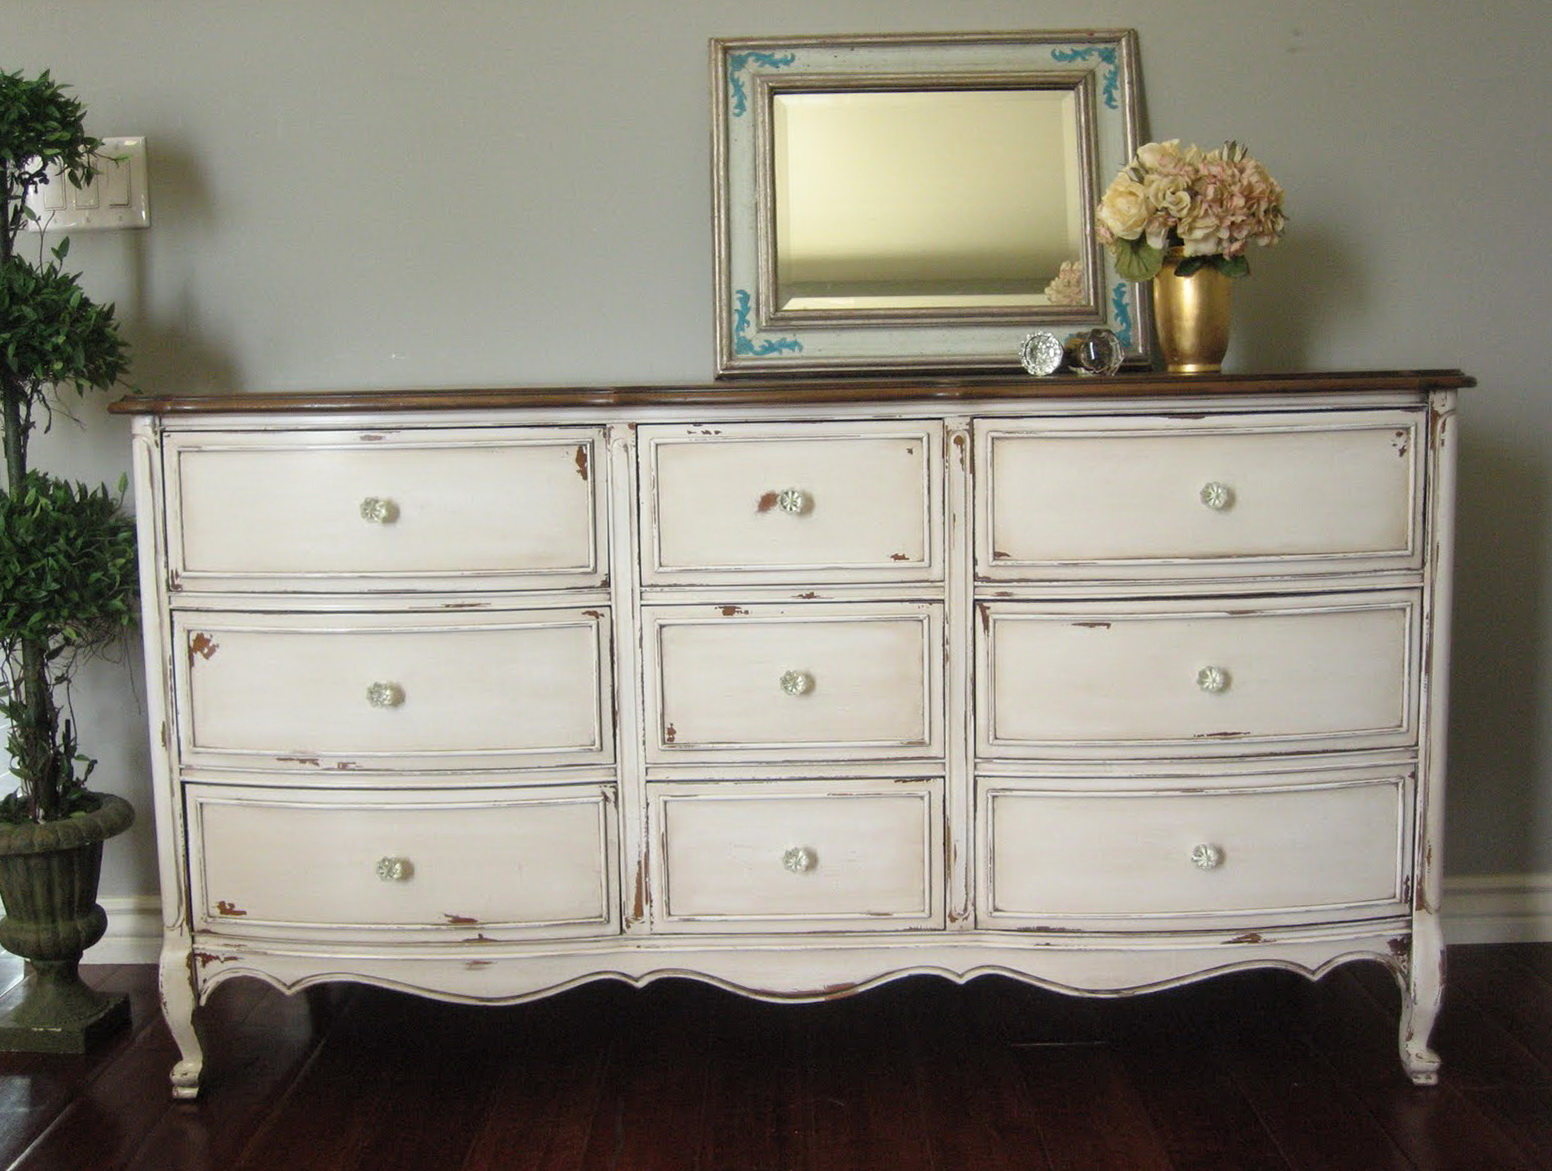 Antique White Dresser For Sale Bestdressers 2017